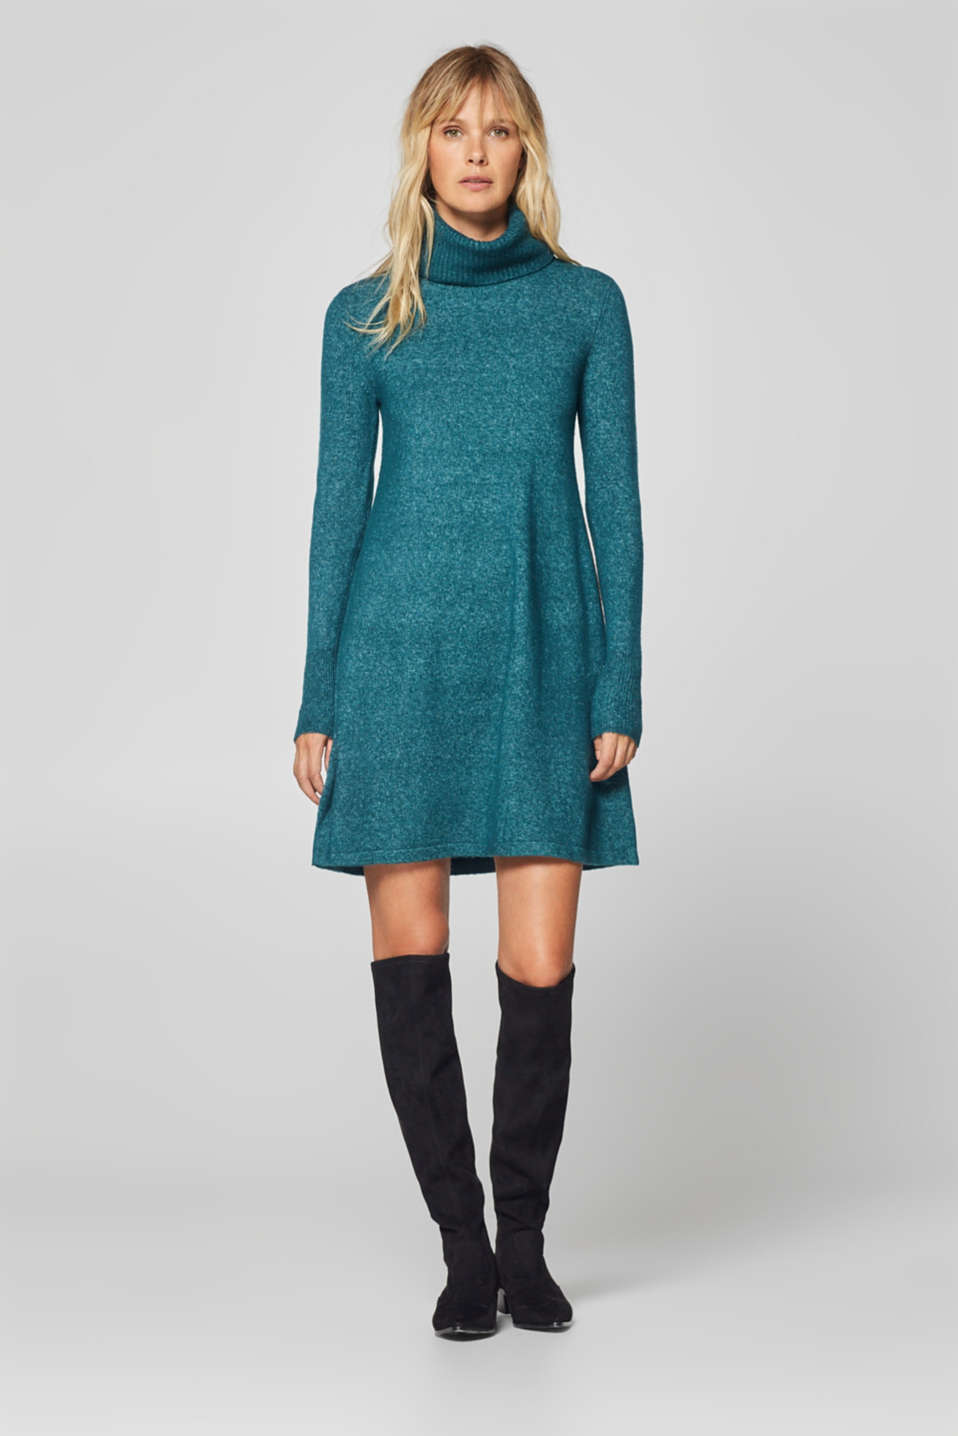 Esprit - With wool: Polo neck knitted dress